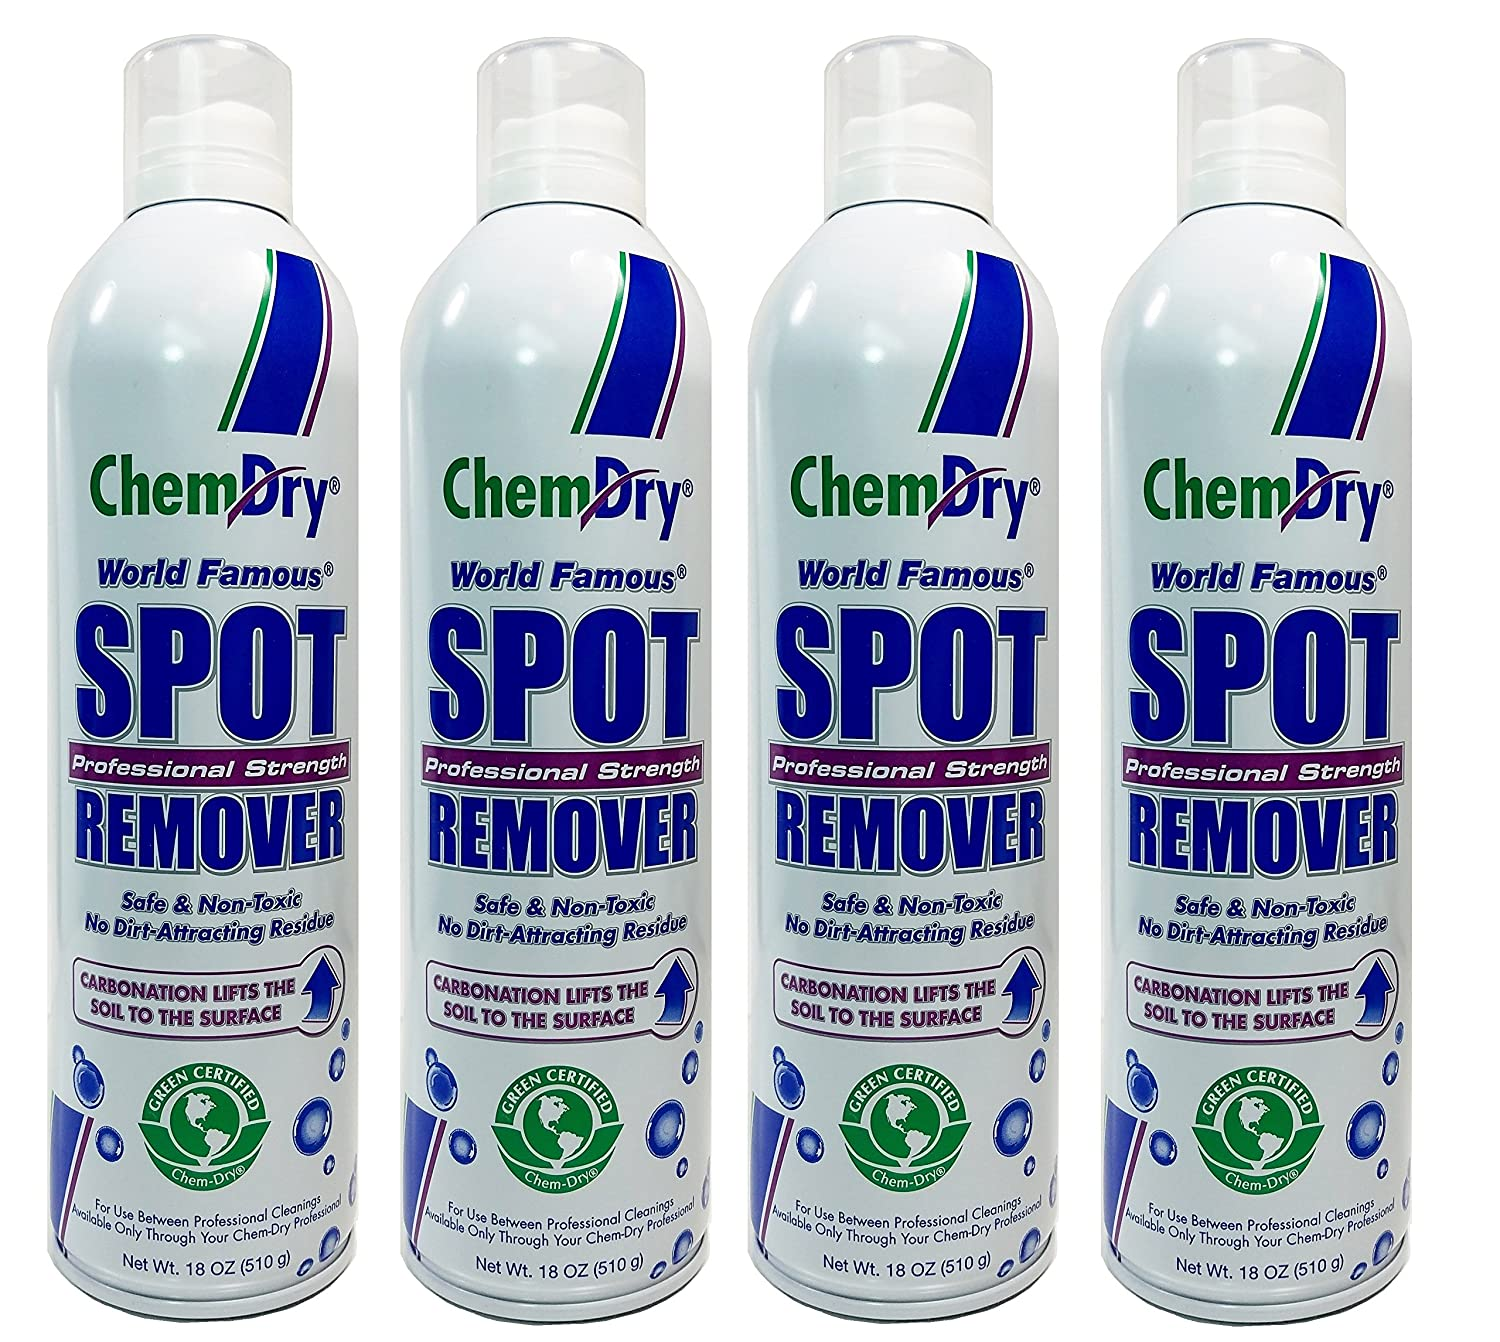 Chem-Dry Professional Strength Spot Remover 18oz (4 Pack)